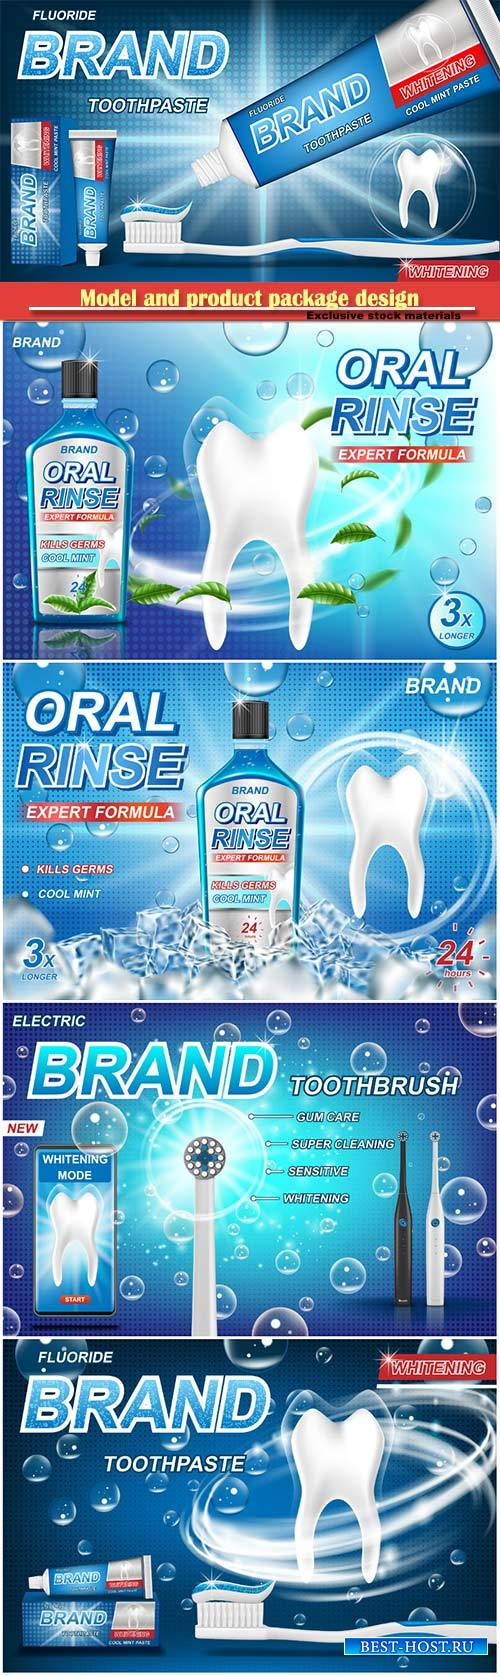 Model and product package design for toothpaste poster or advertising